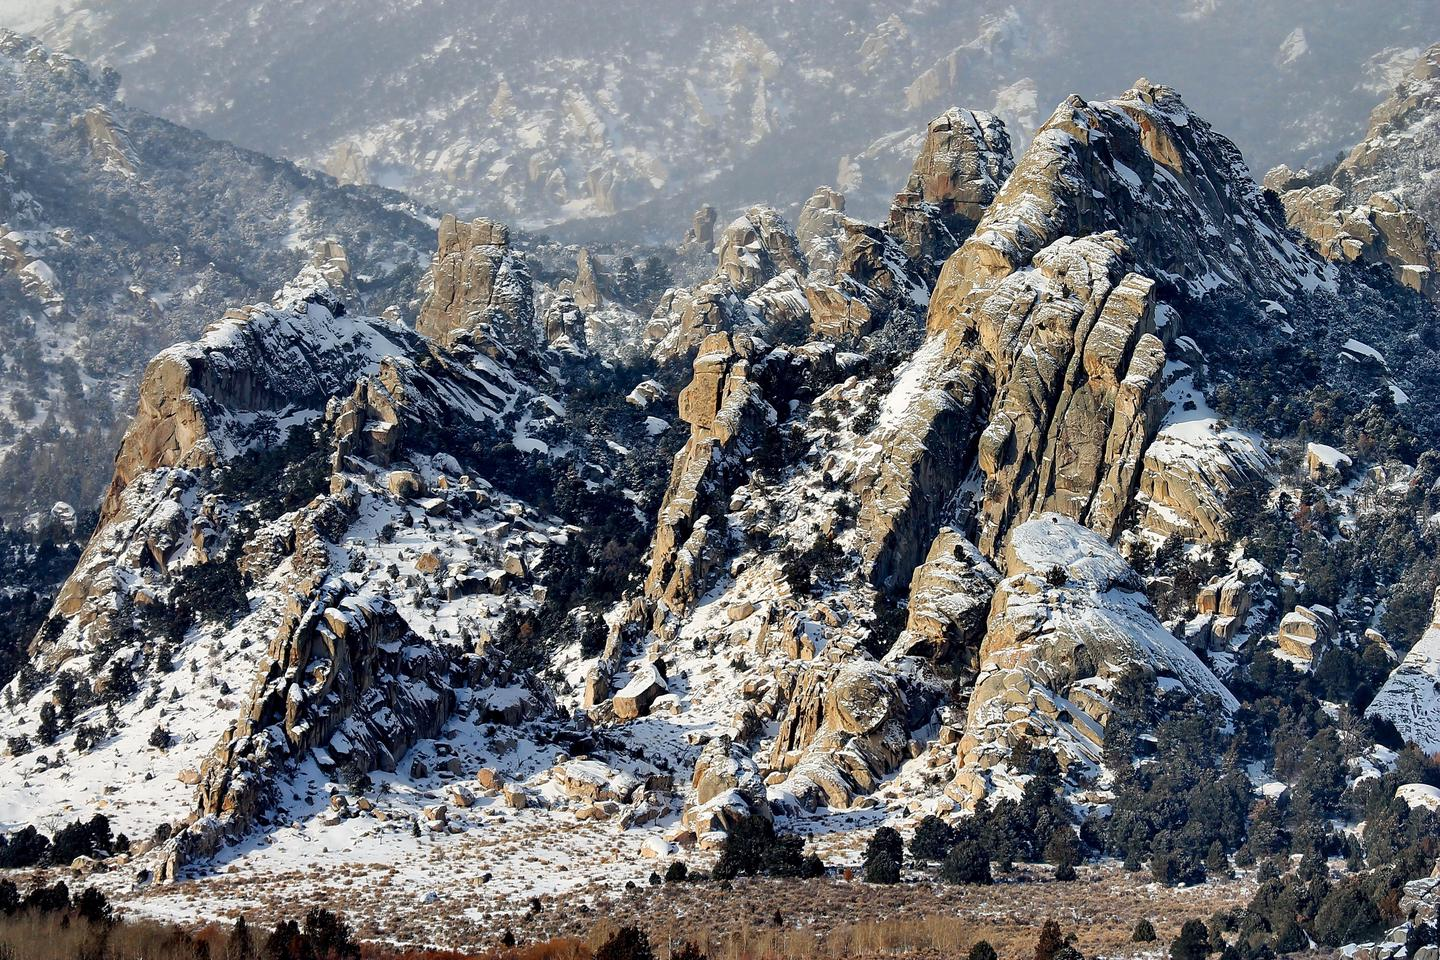 Silent City of RocksWinter is a great time to experience quiet and solitude in City of Rocks.